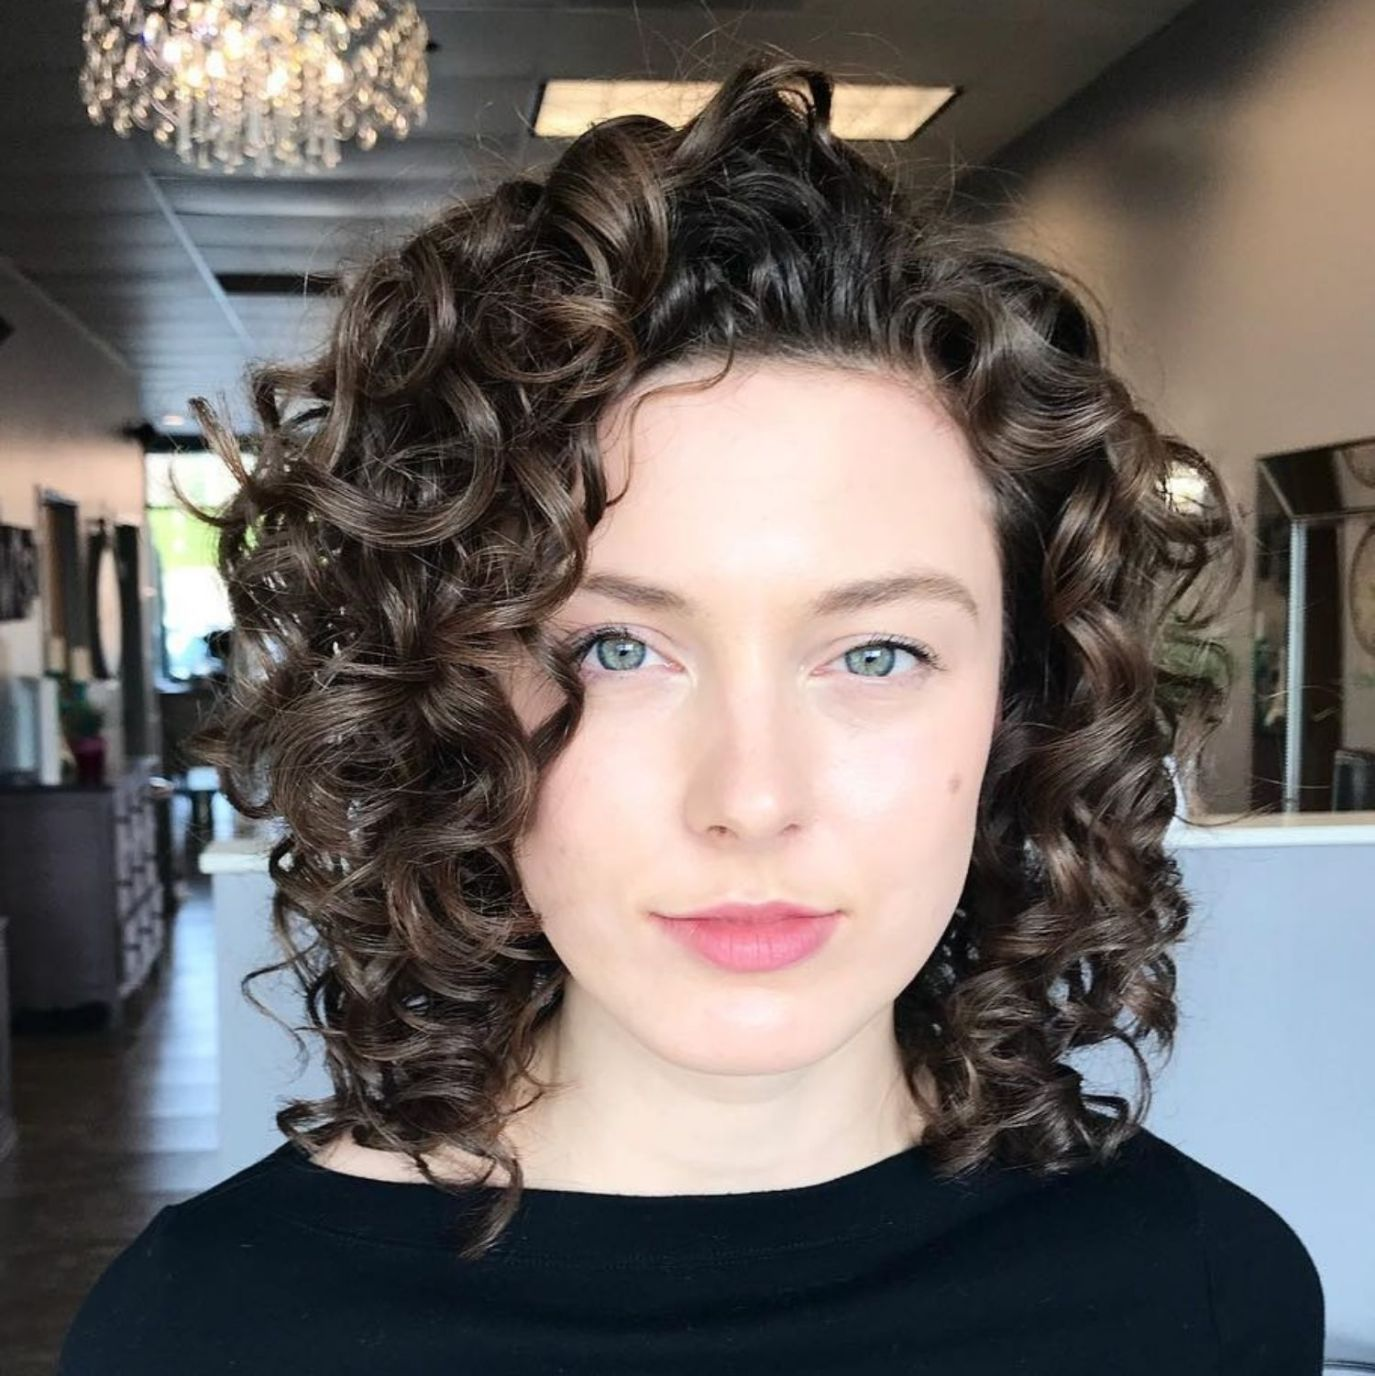 65 Different Versions of Curly Bob Hairstyle (With images) | Curly hair styles naturally, Bob ...